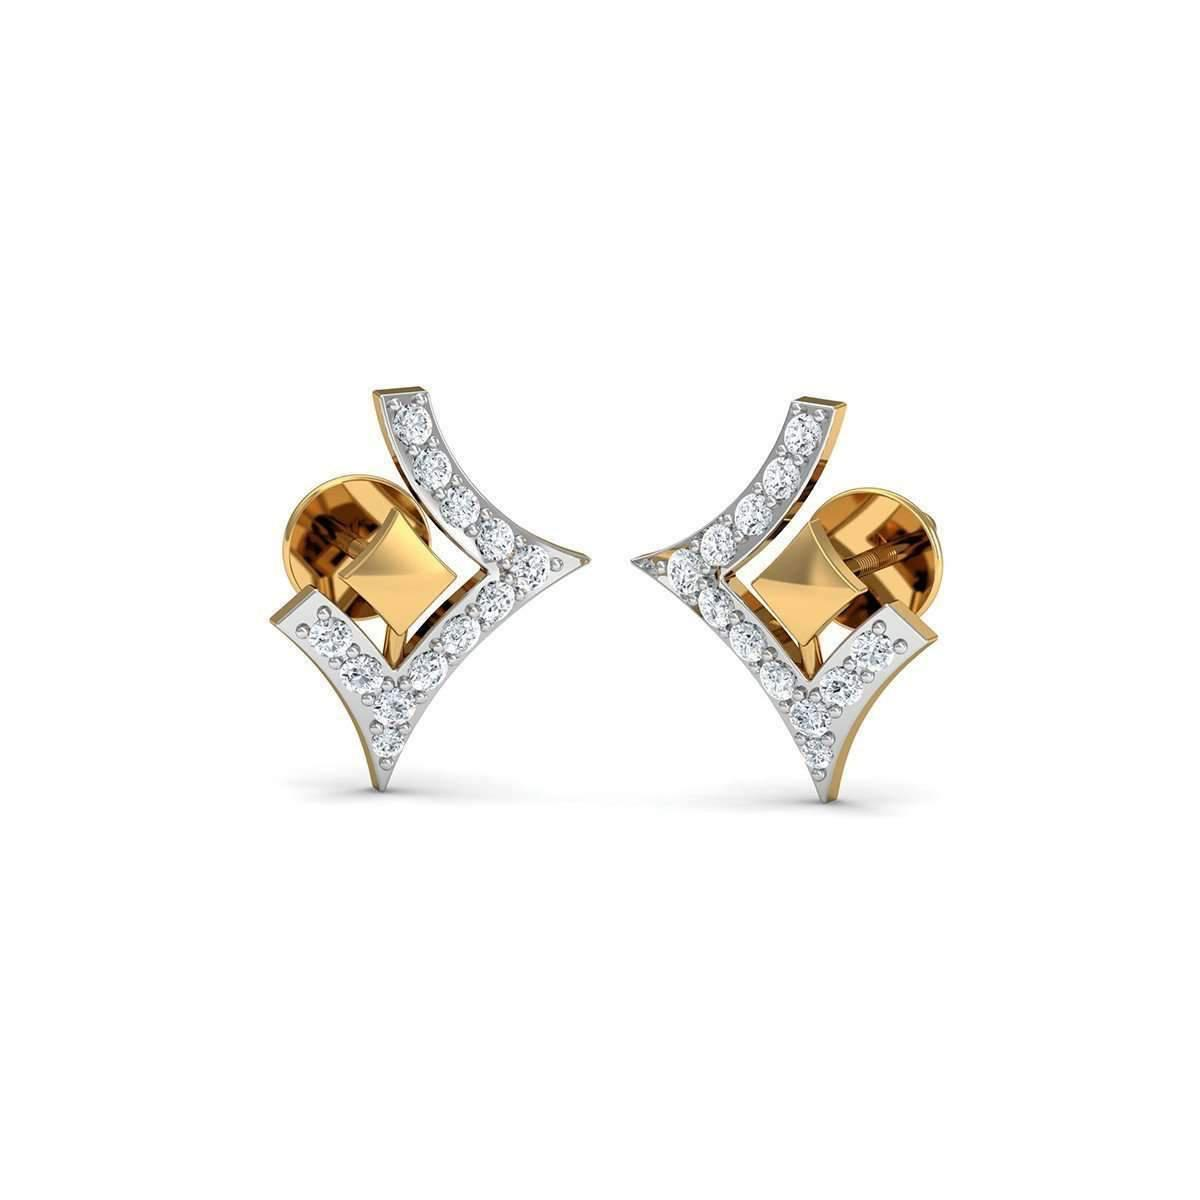 Diamoire Jewels Pave-Prong Diamond and 18kt White Gold Earrings Inspired by Nature